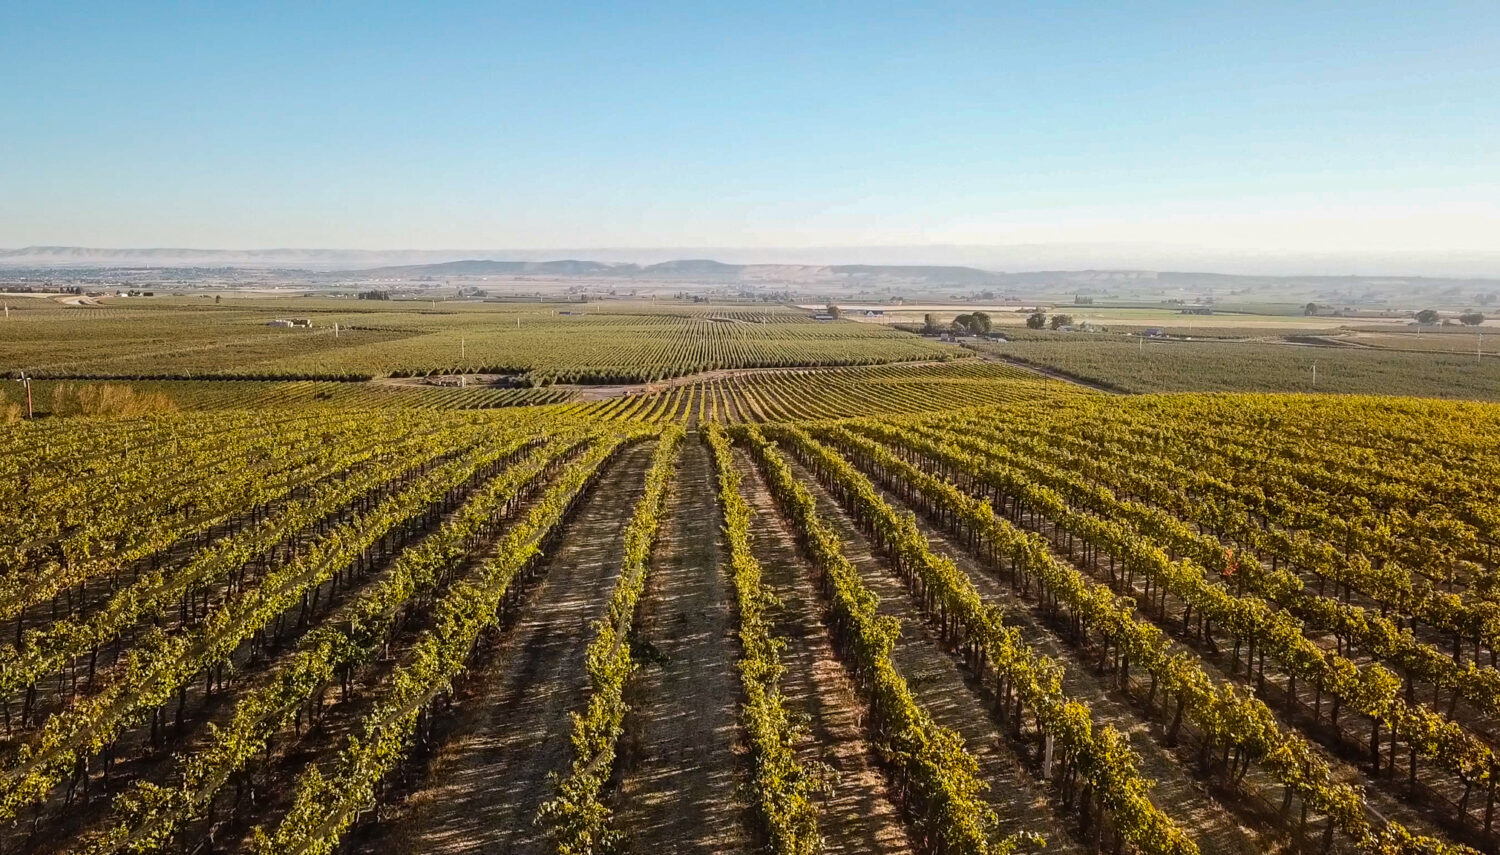 Rows of grape vines leading to the horizon with hazy hills and a blue sky in the distance.